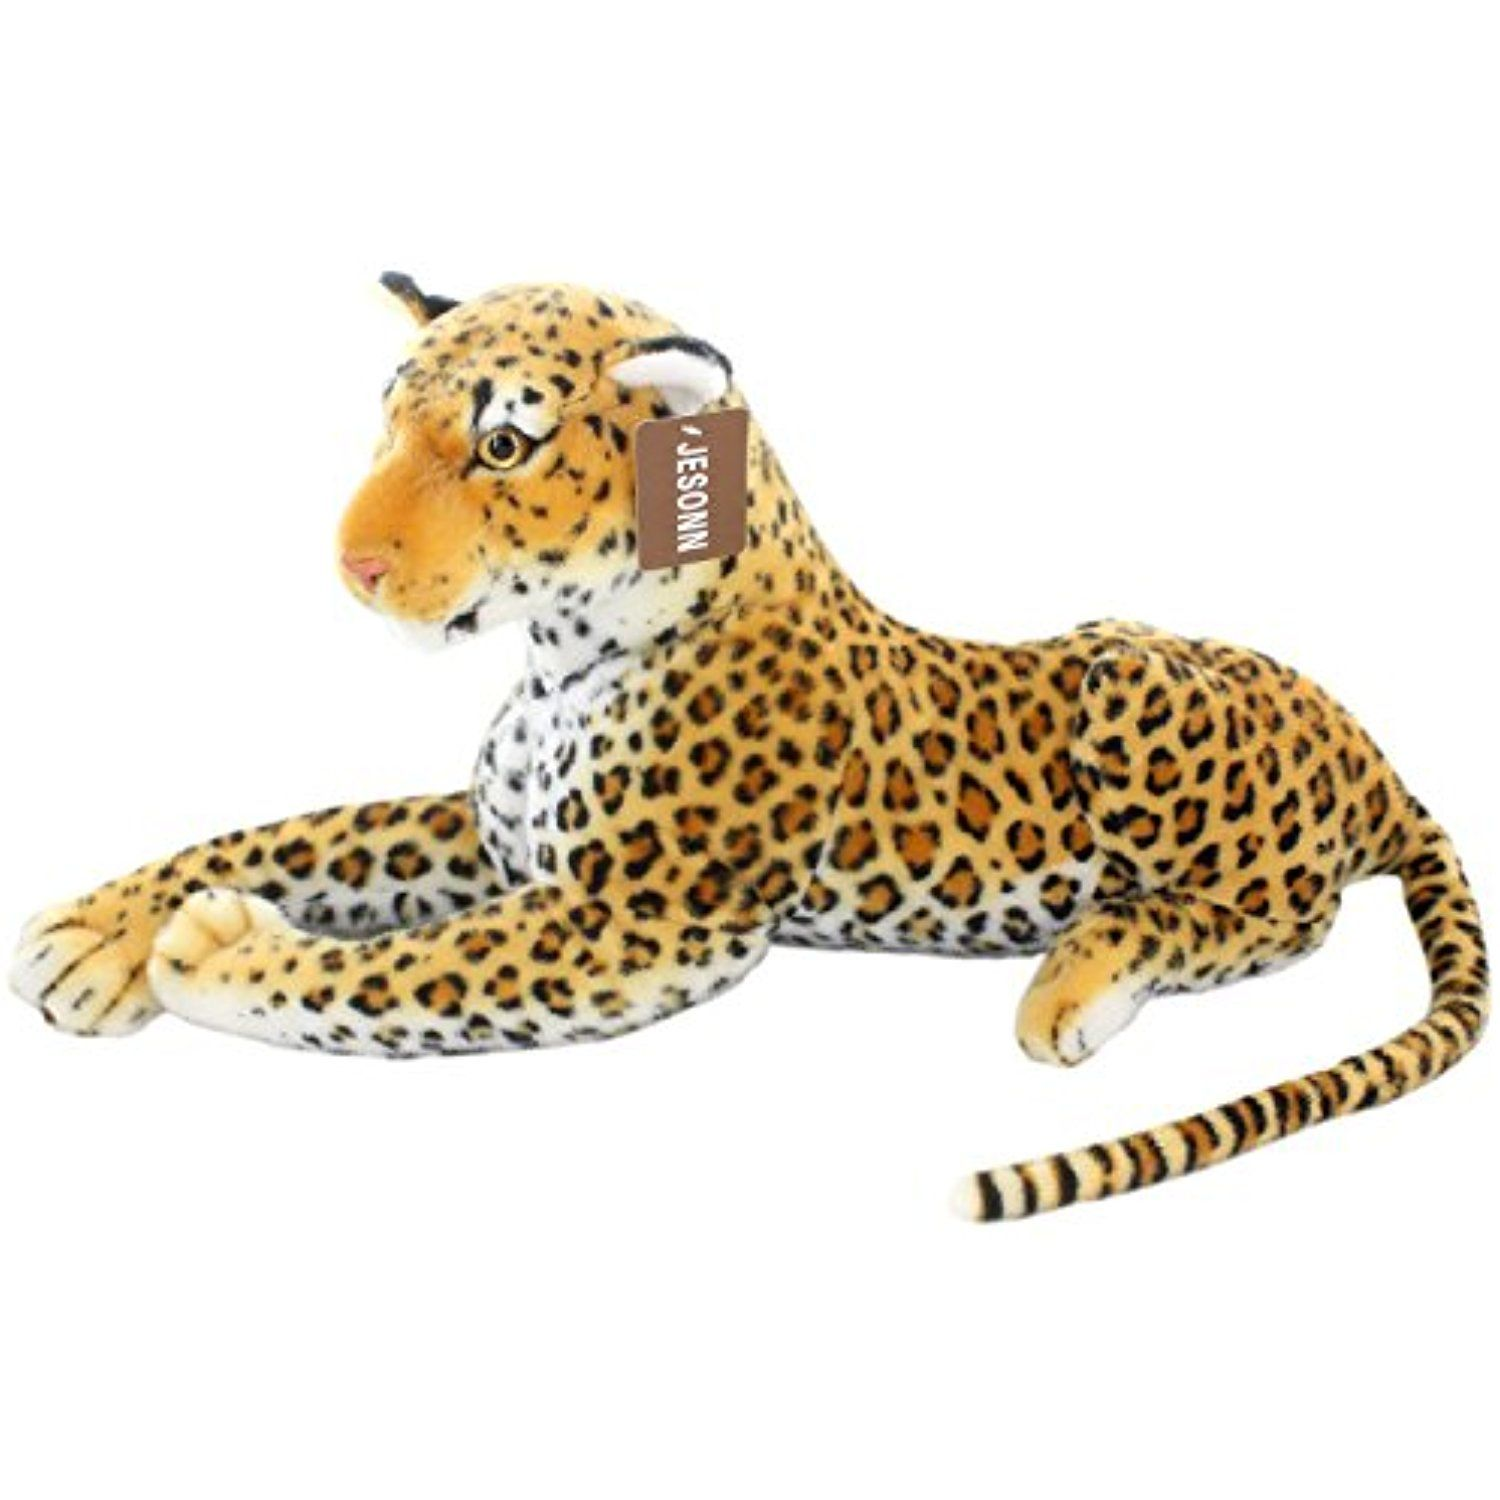 Jesonn Realistic Giant Stuffed Animals Plush Toy Spotted Leopard For Kids Gifts 23 6 Or 60cm 1pc C Giant Stuffed Animals Animals Realistic Stuffed Animals [ 1500 x 1500 Pixel ]